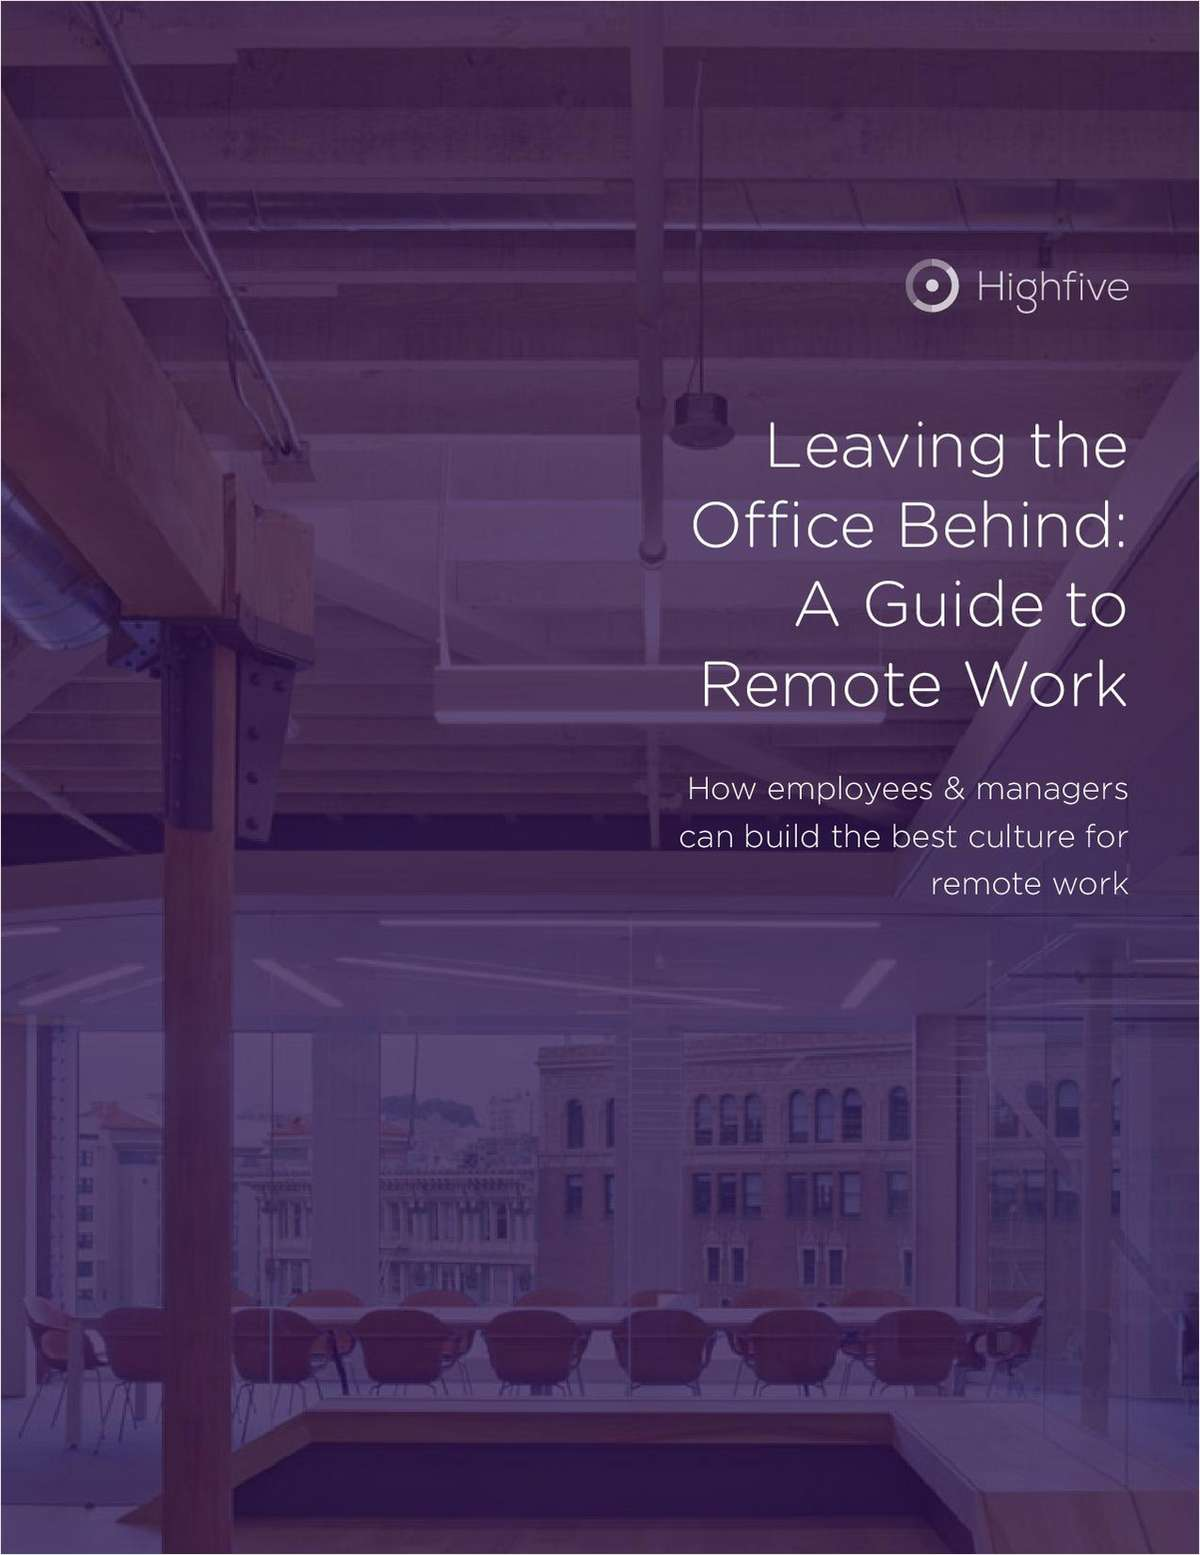 Leaving the Office Behind: A Guide to Remote Work